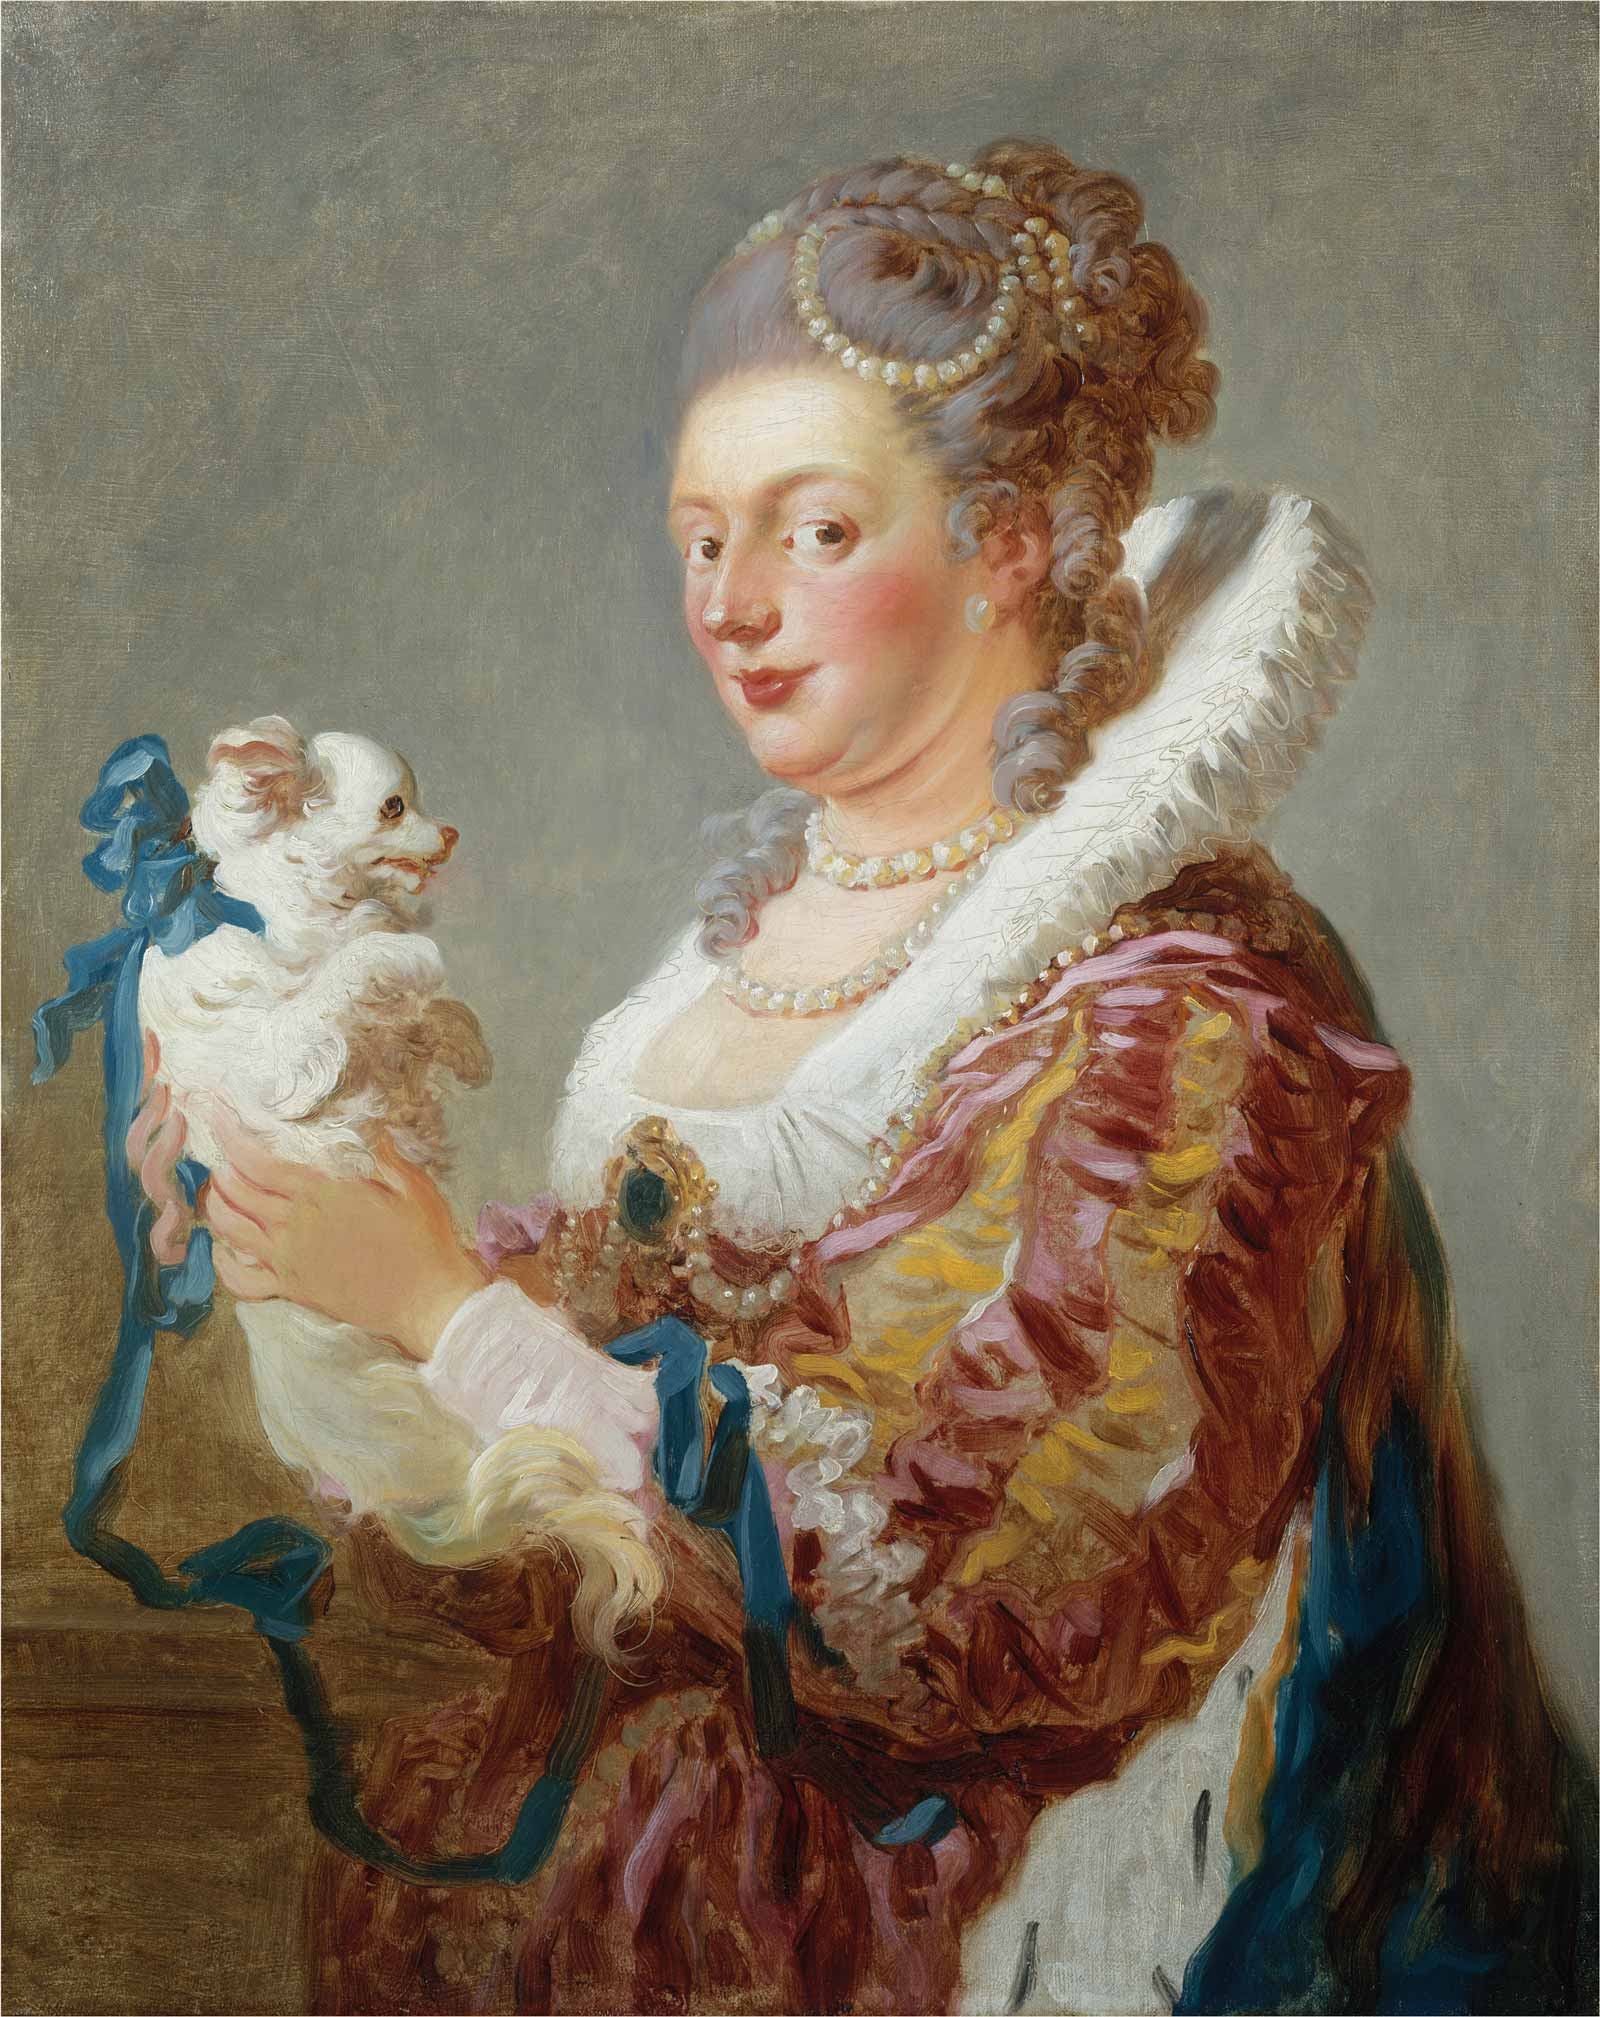 Jean Honoré Fragonard: Woman with a Dog, identified as Marie-Émilie Coignet de Courson (1727–1806), circa 1769 (Metropolitan Museum of Art/Art Resource, NY)